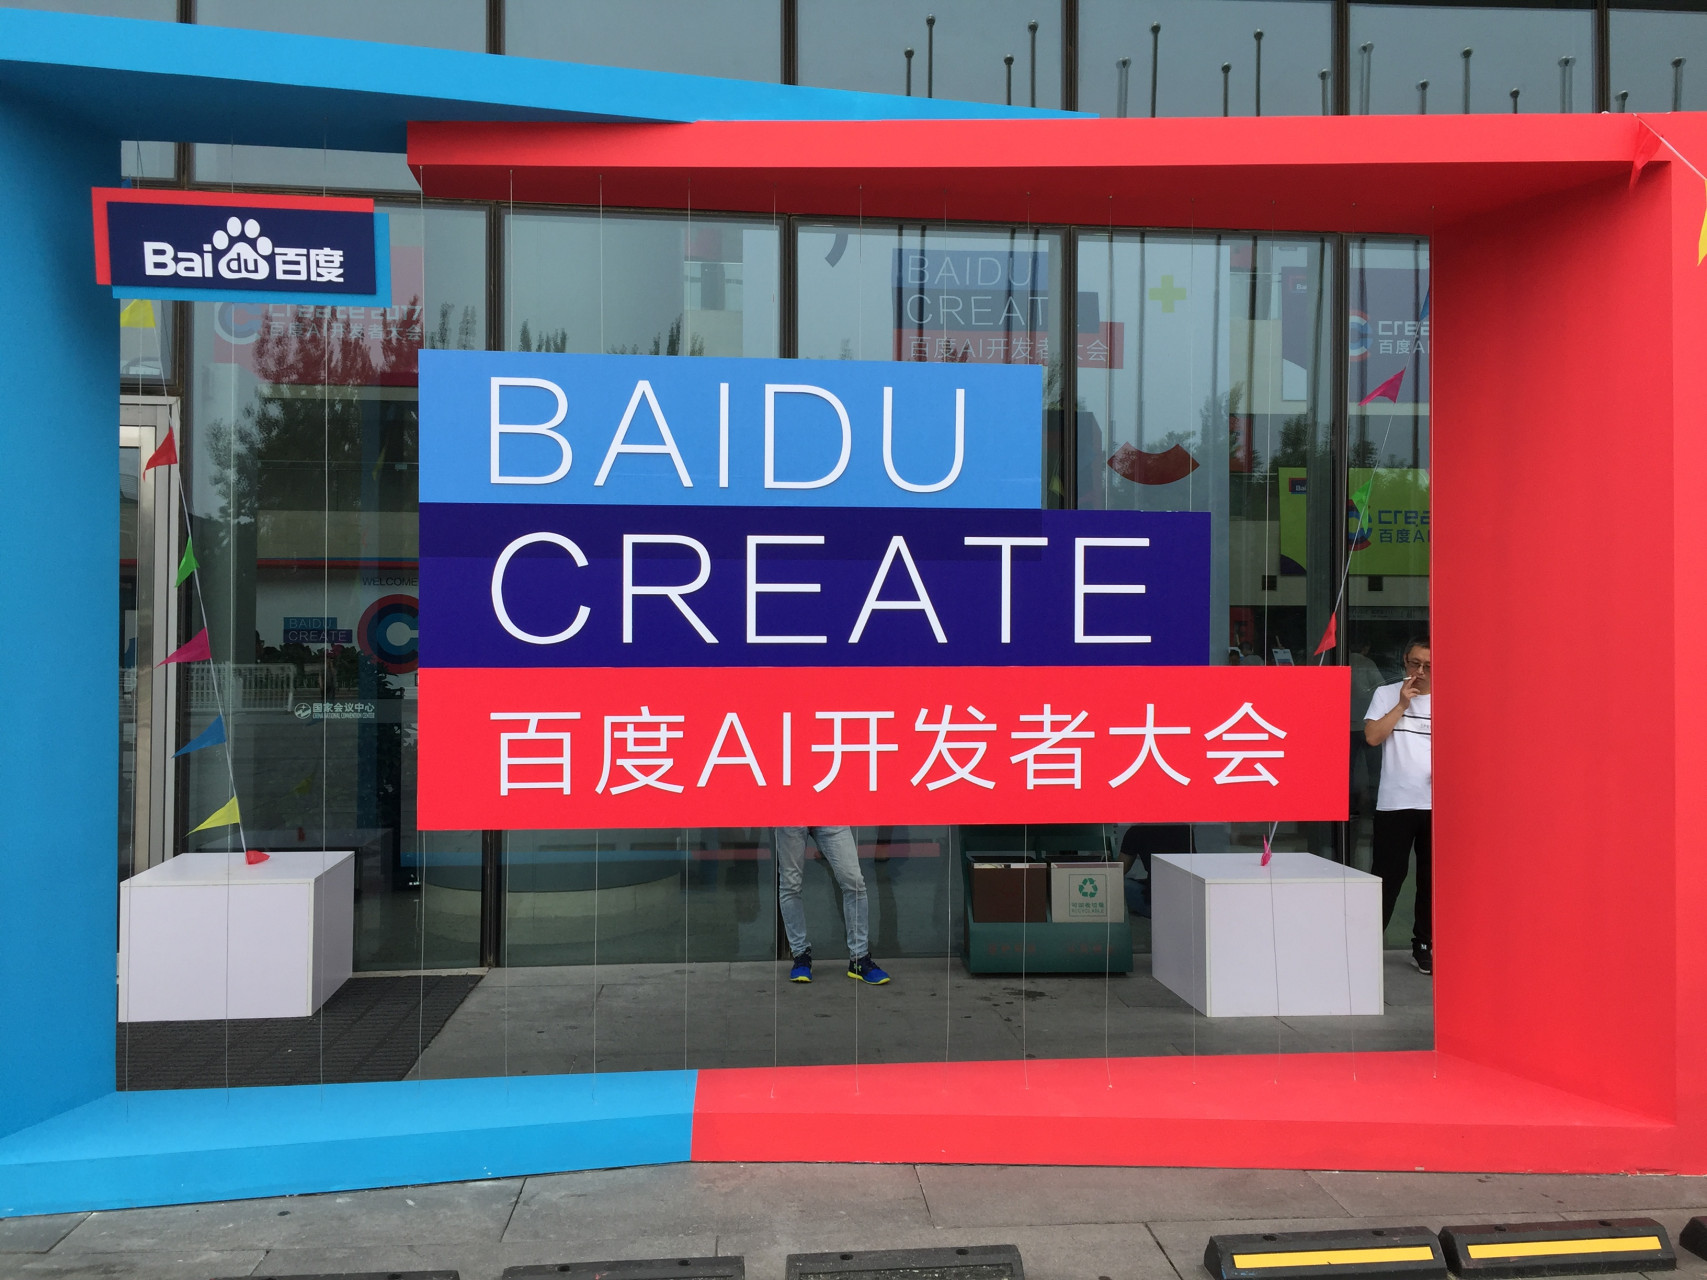 Welcome to Baidu Create (Image credit: TechNode)